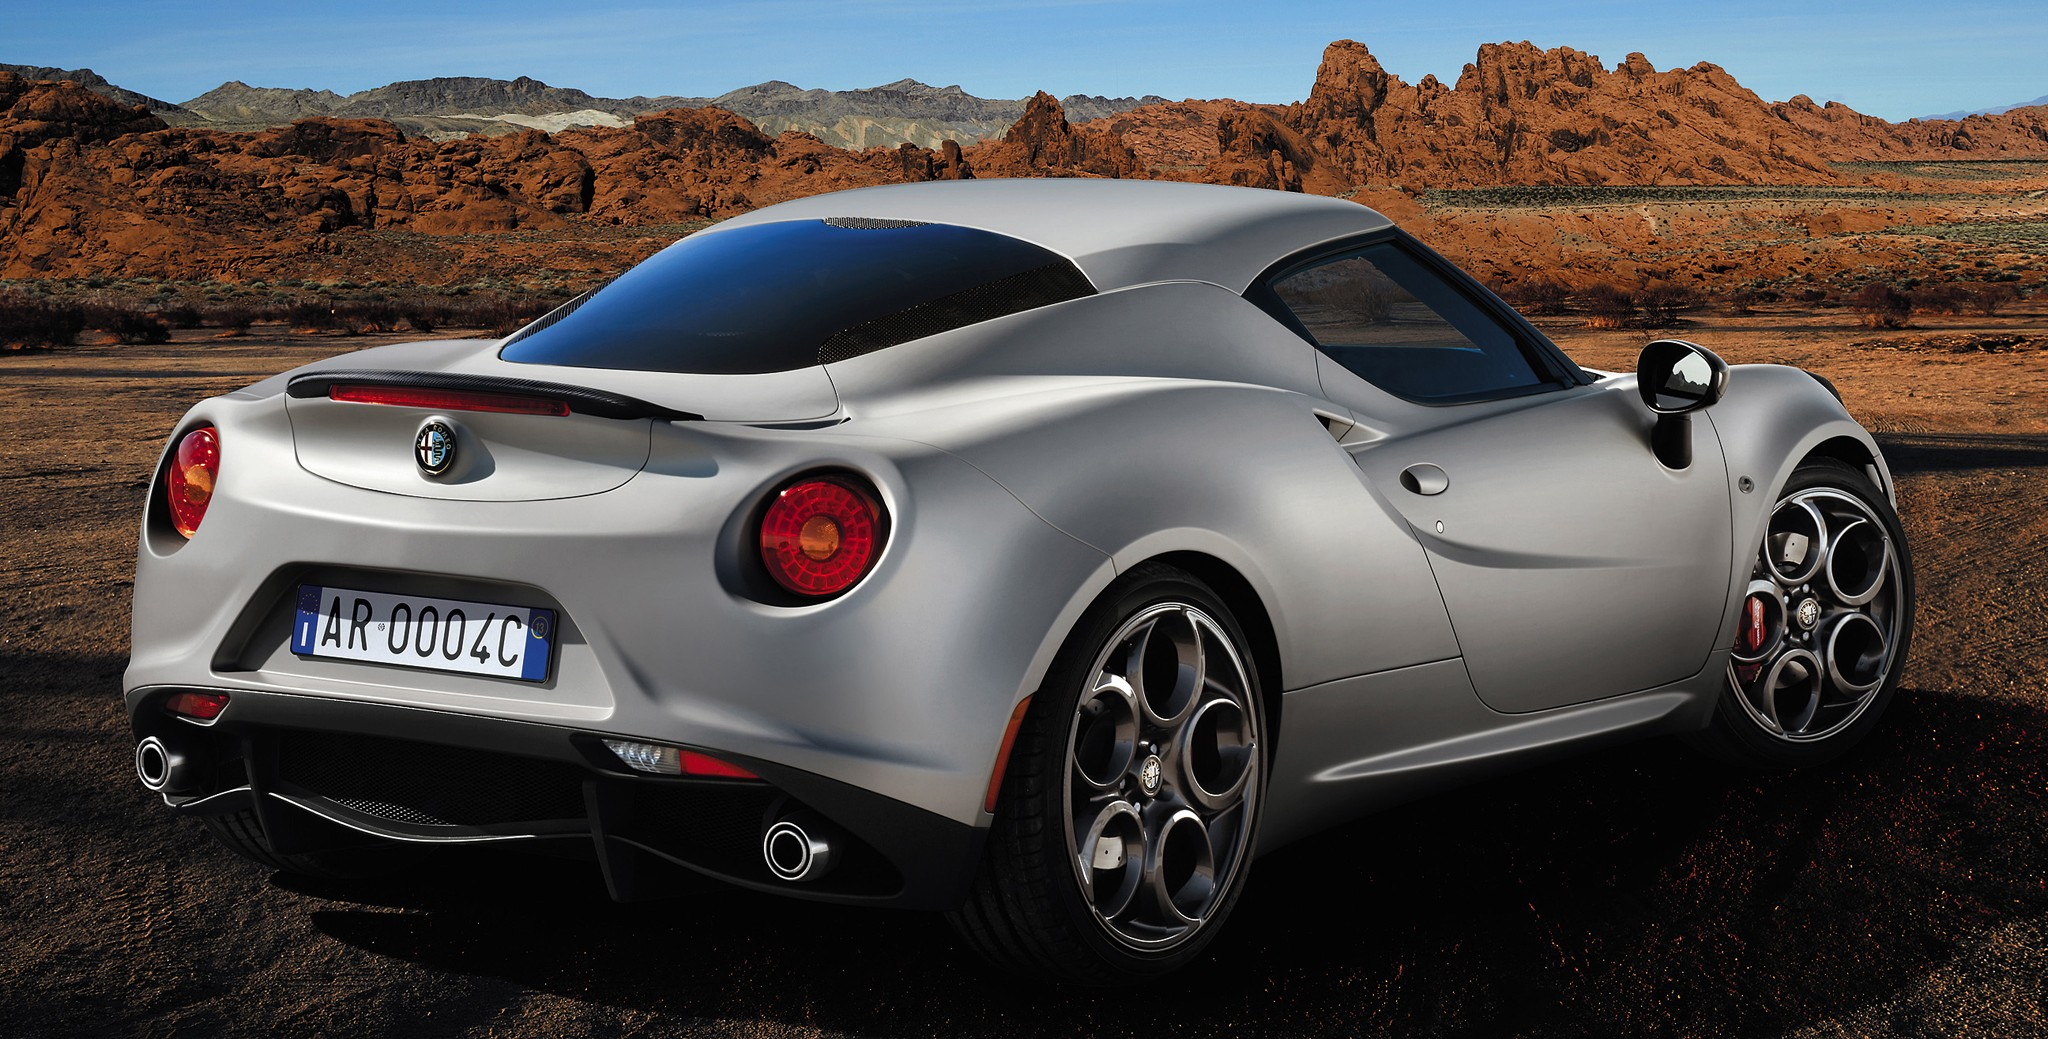 alfa romeo 4c launch edition limited to 1 000 units image 159410. Black Bedroom Furniture Sets. Home Design Ideas